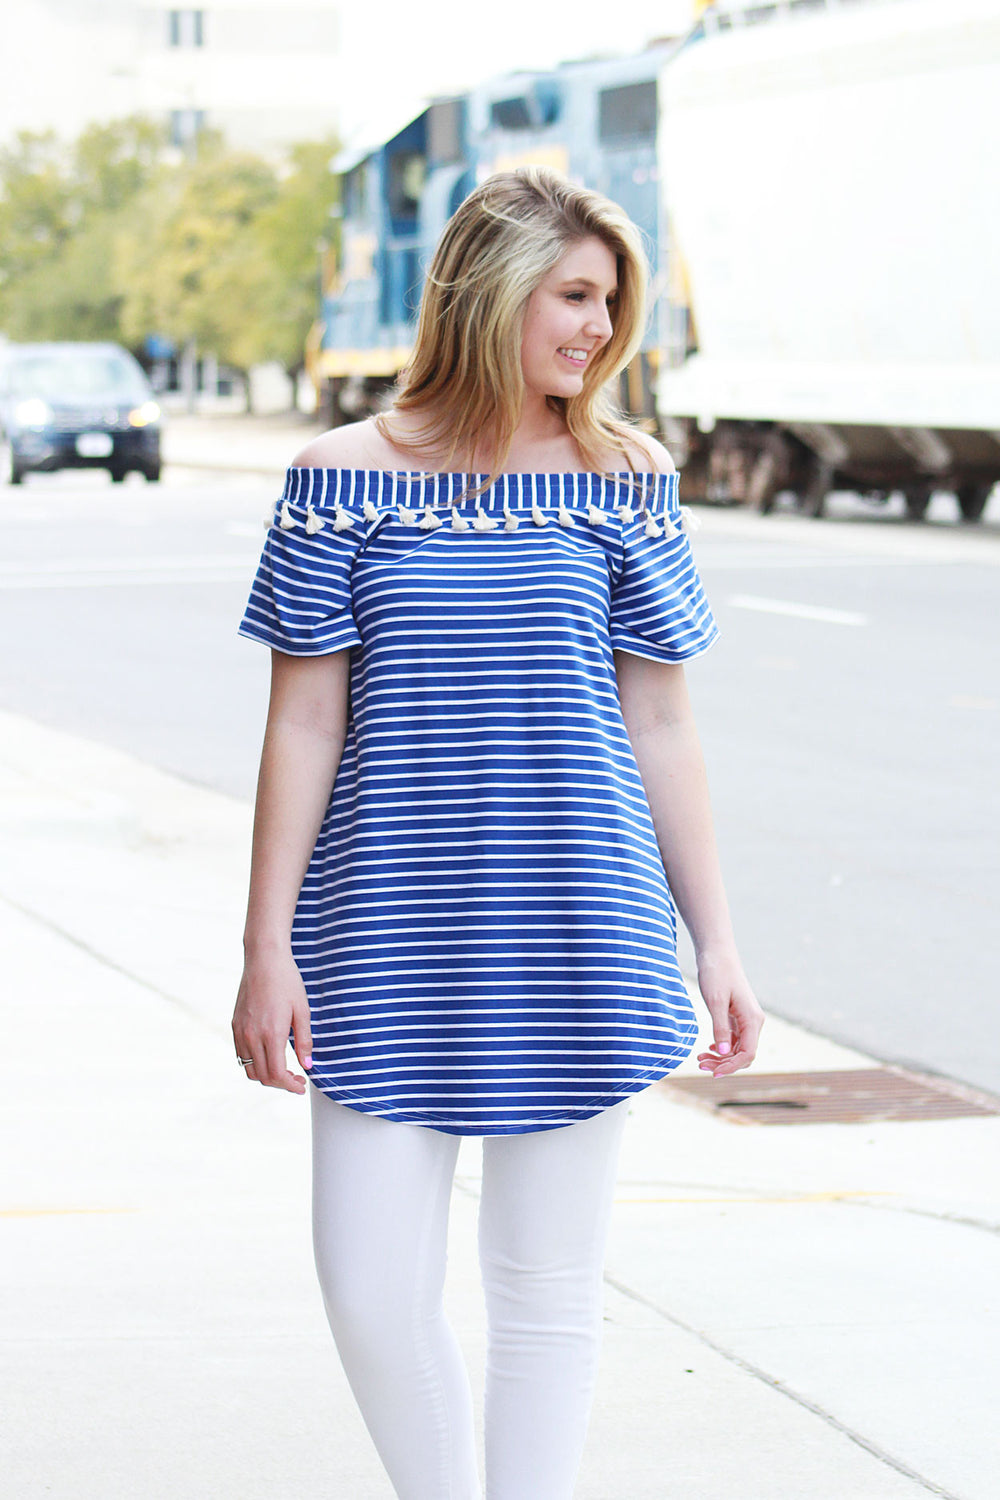 Right About Stripes Tunic - Blue